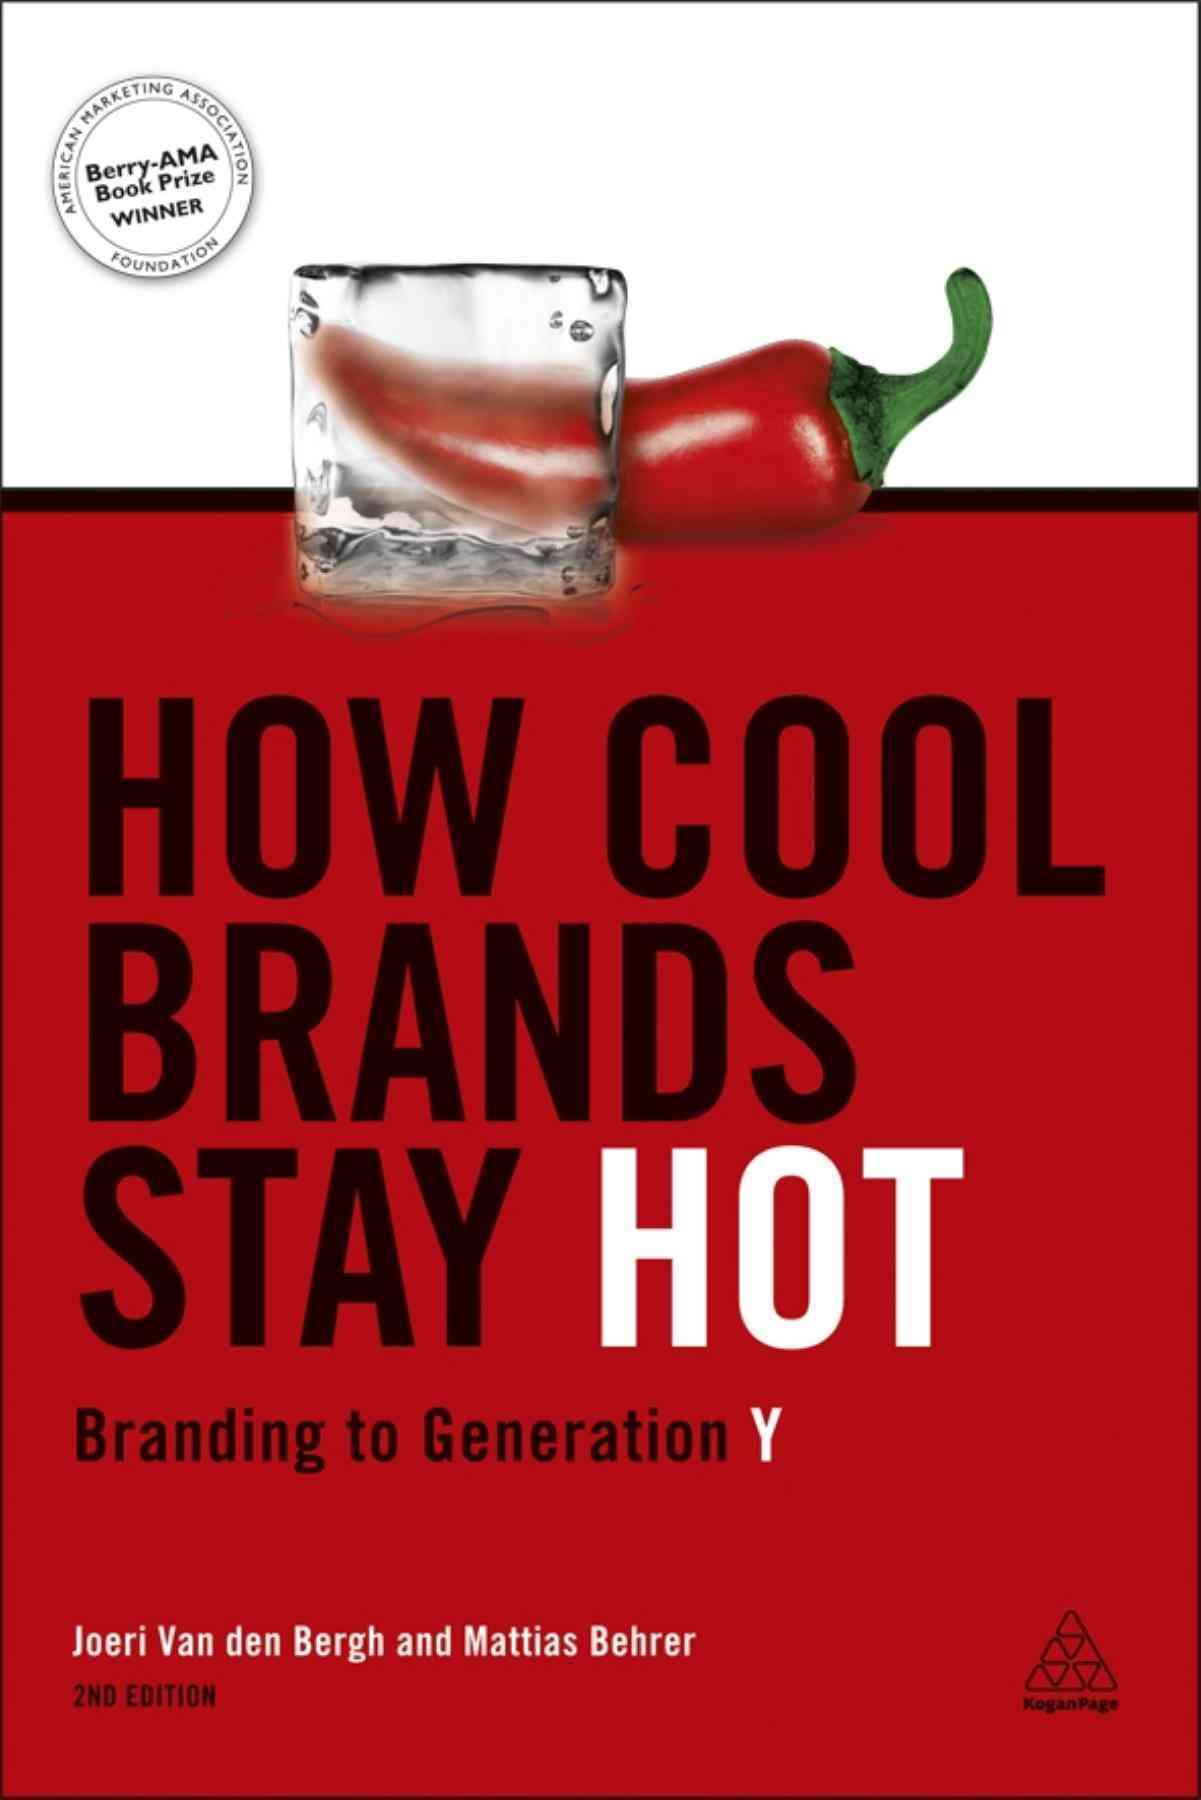 How Cool Brands Stay Hot: Branding to Generation Y (Paperback)